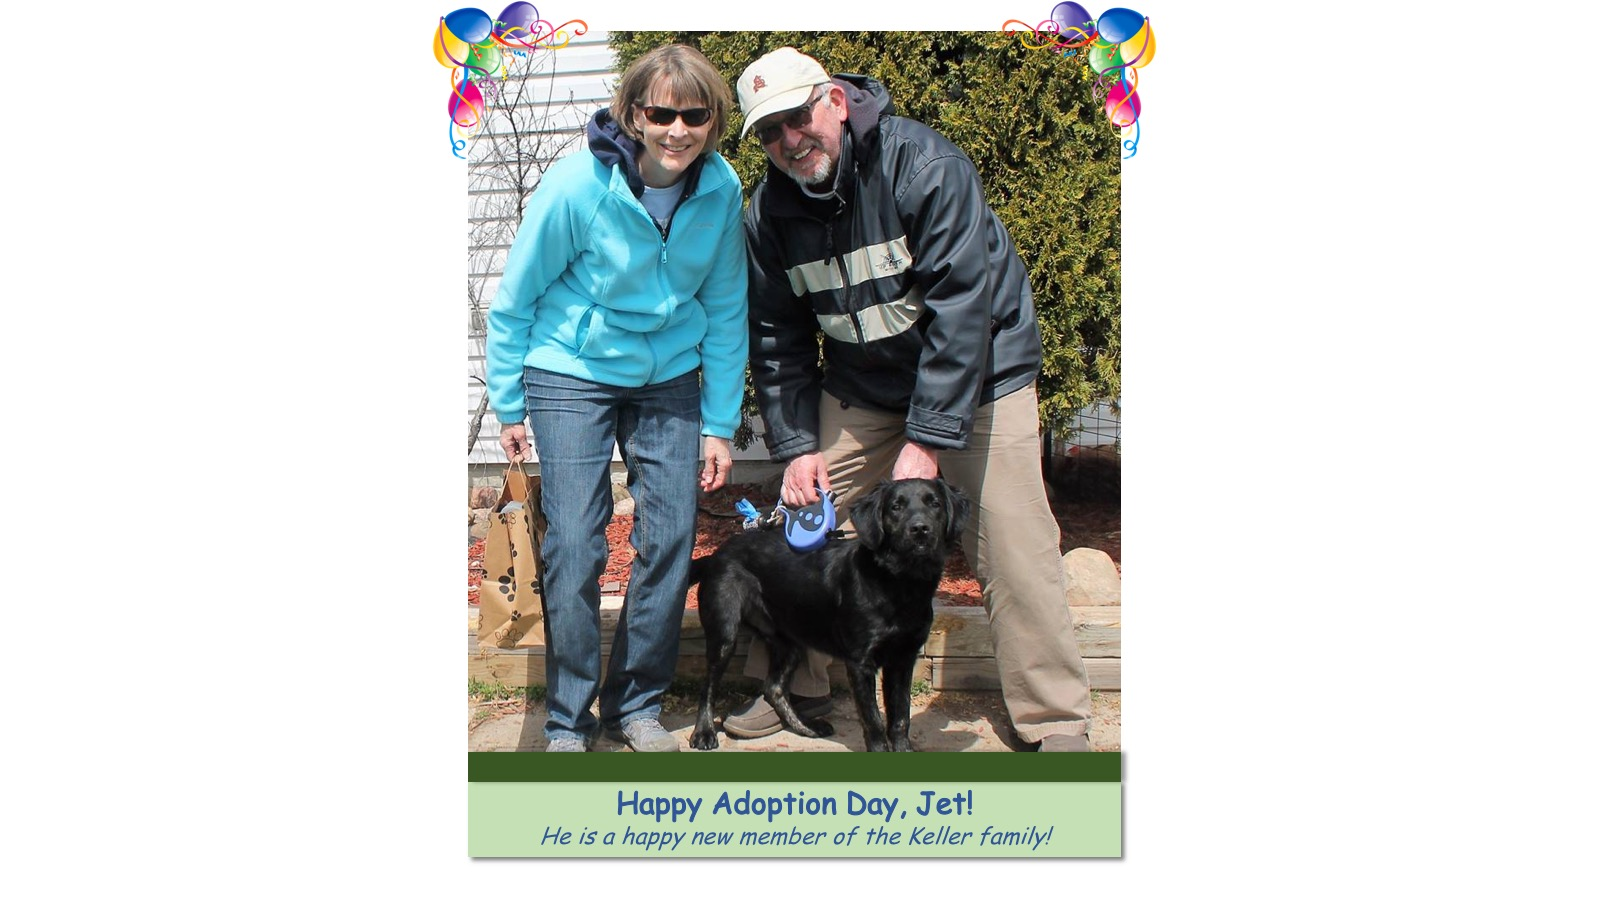 Jet_Adoption_Photo_2018.jpg